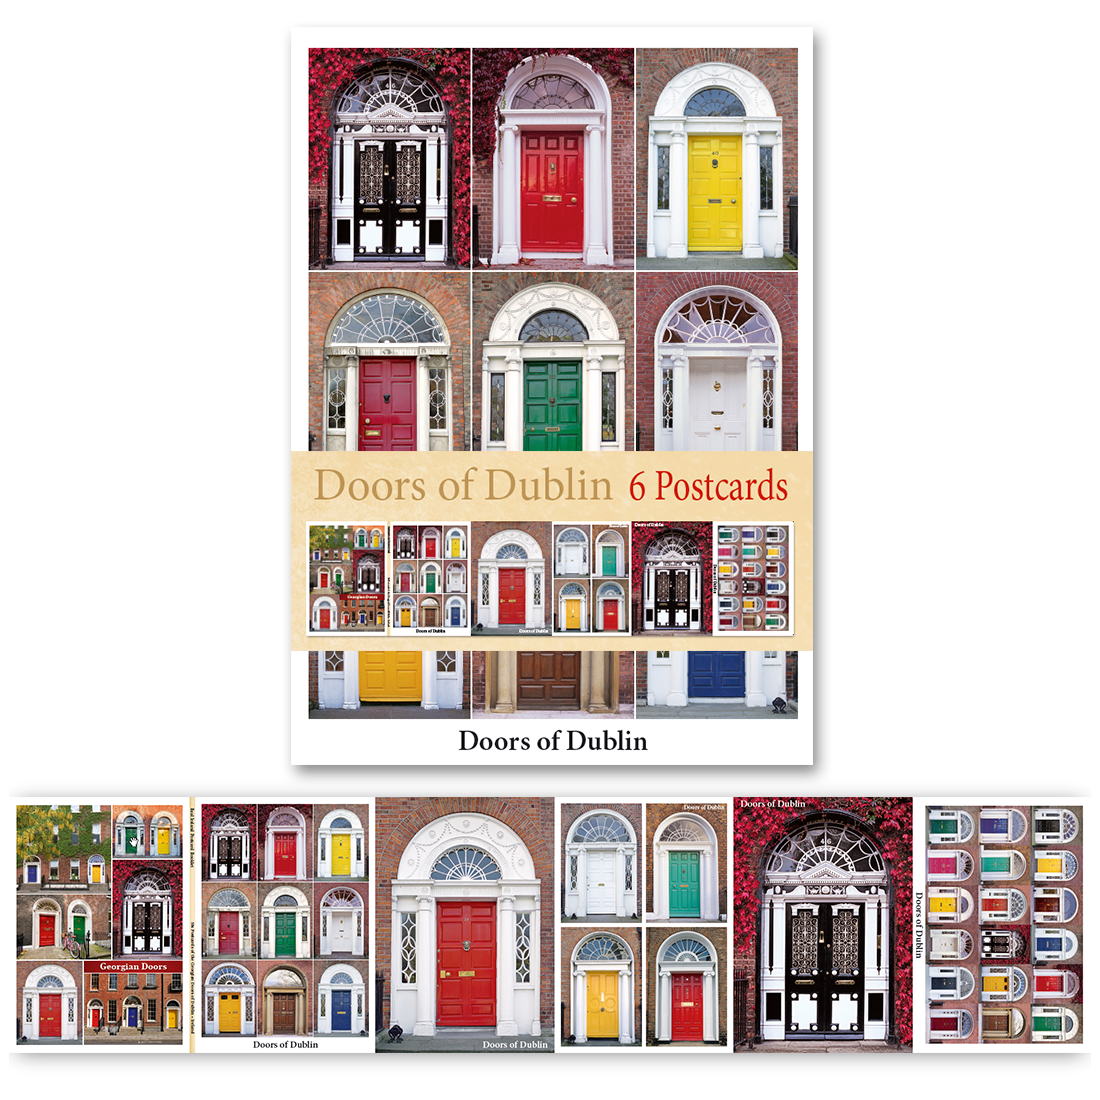 Doors of Dublin - Pack of 6 Postcards